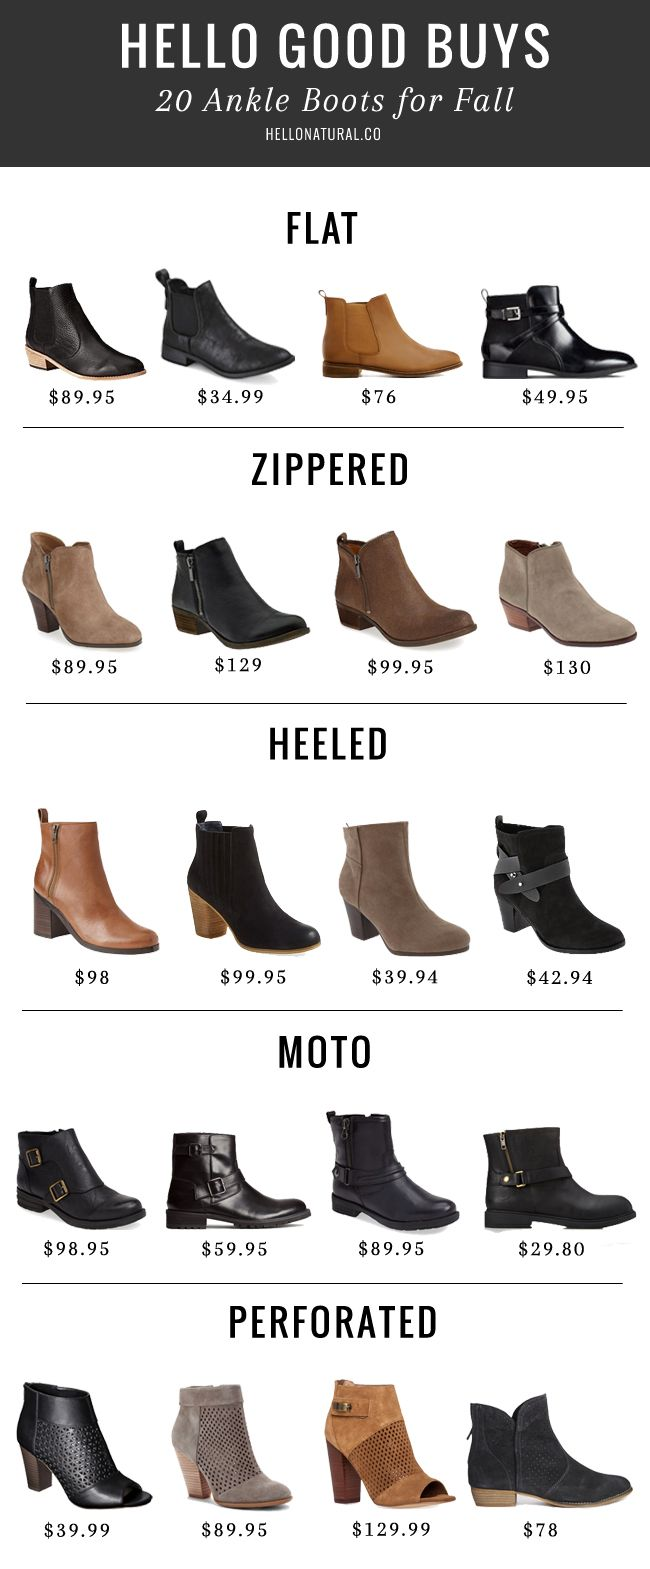 Ankle boots are the perfect fusion of comfort and style. Find the right pair to add to your closet with the 20 best ankle boots for fall.